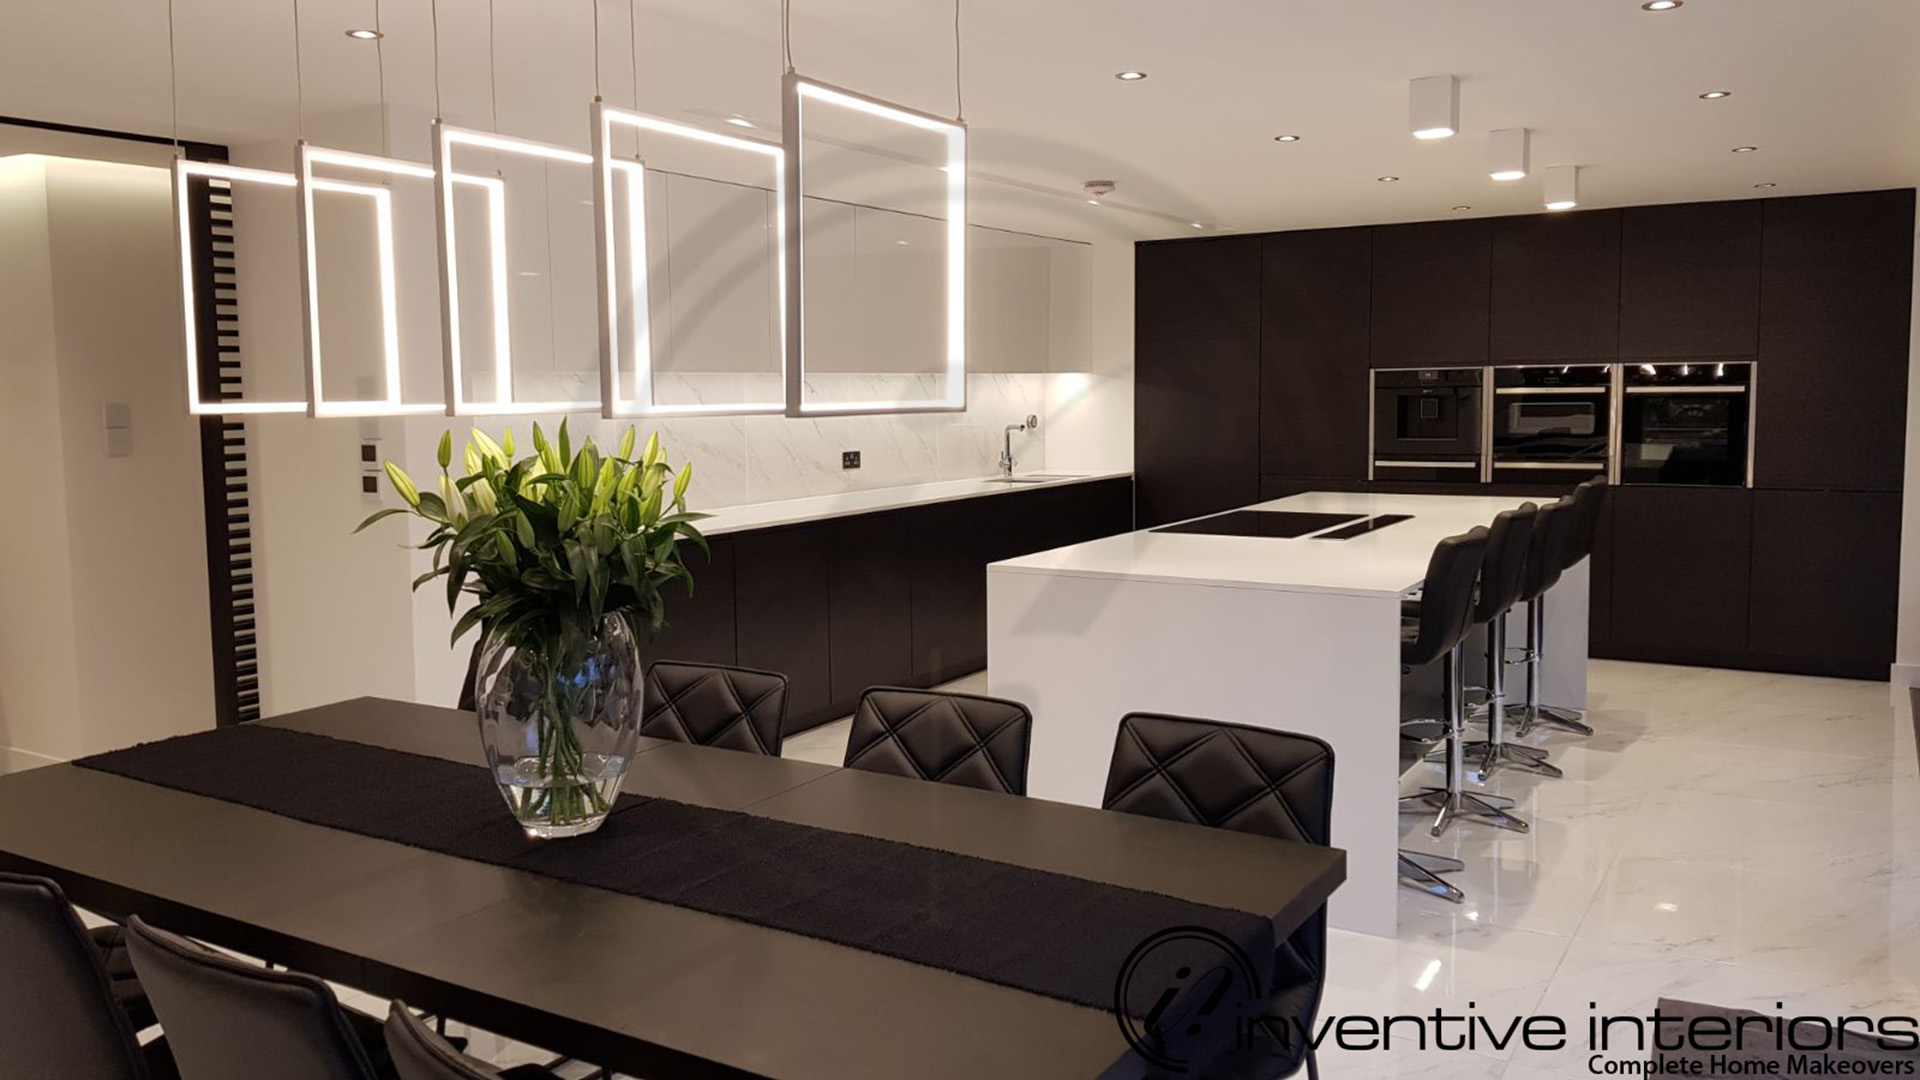 iinterior-designer-London-nterior design wokingham_open plan kitchen